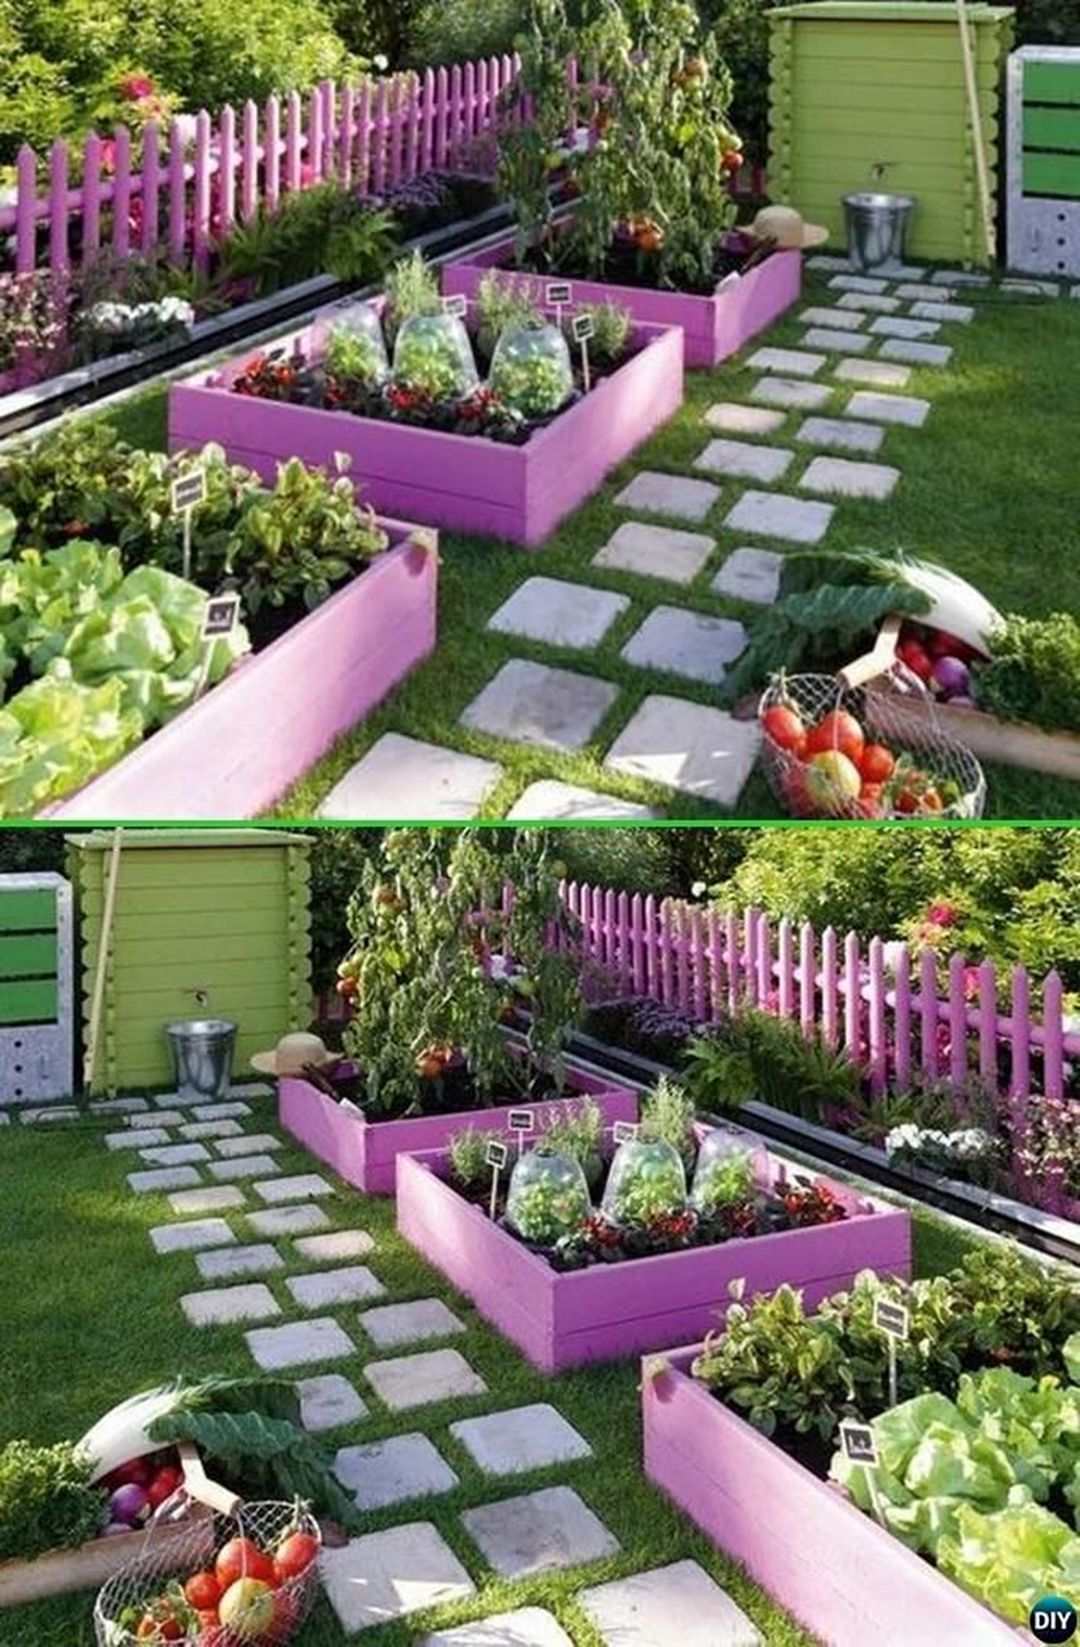 25 Most Creative Gardening Ideas That Easy On Your Budget With